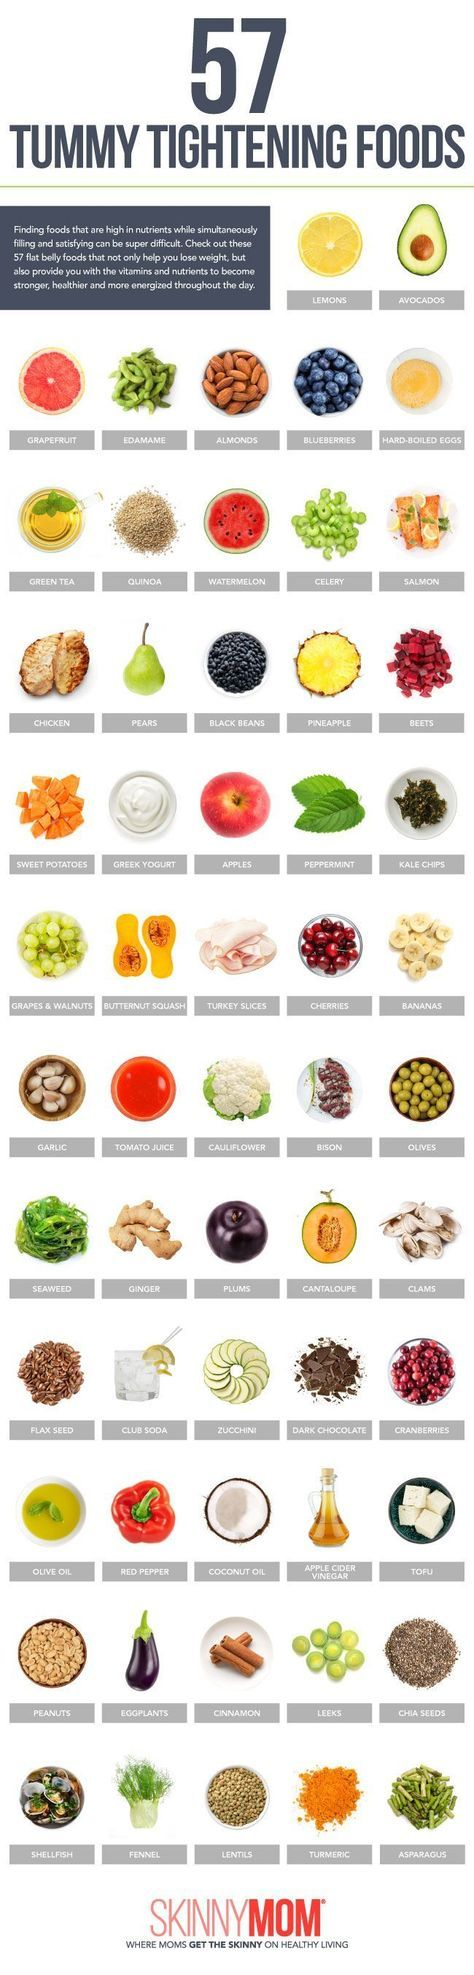 Tighten your tummy with these tasty, healthy foods.